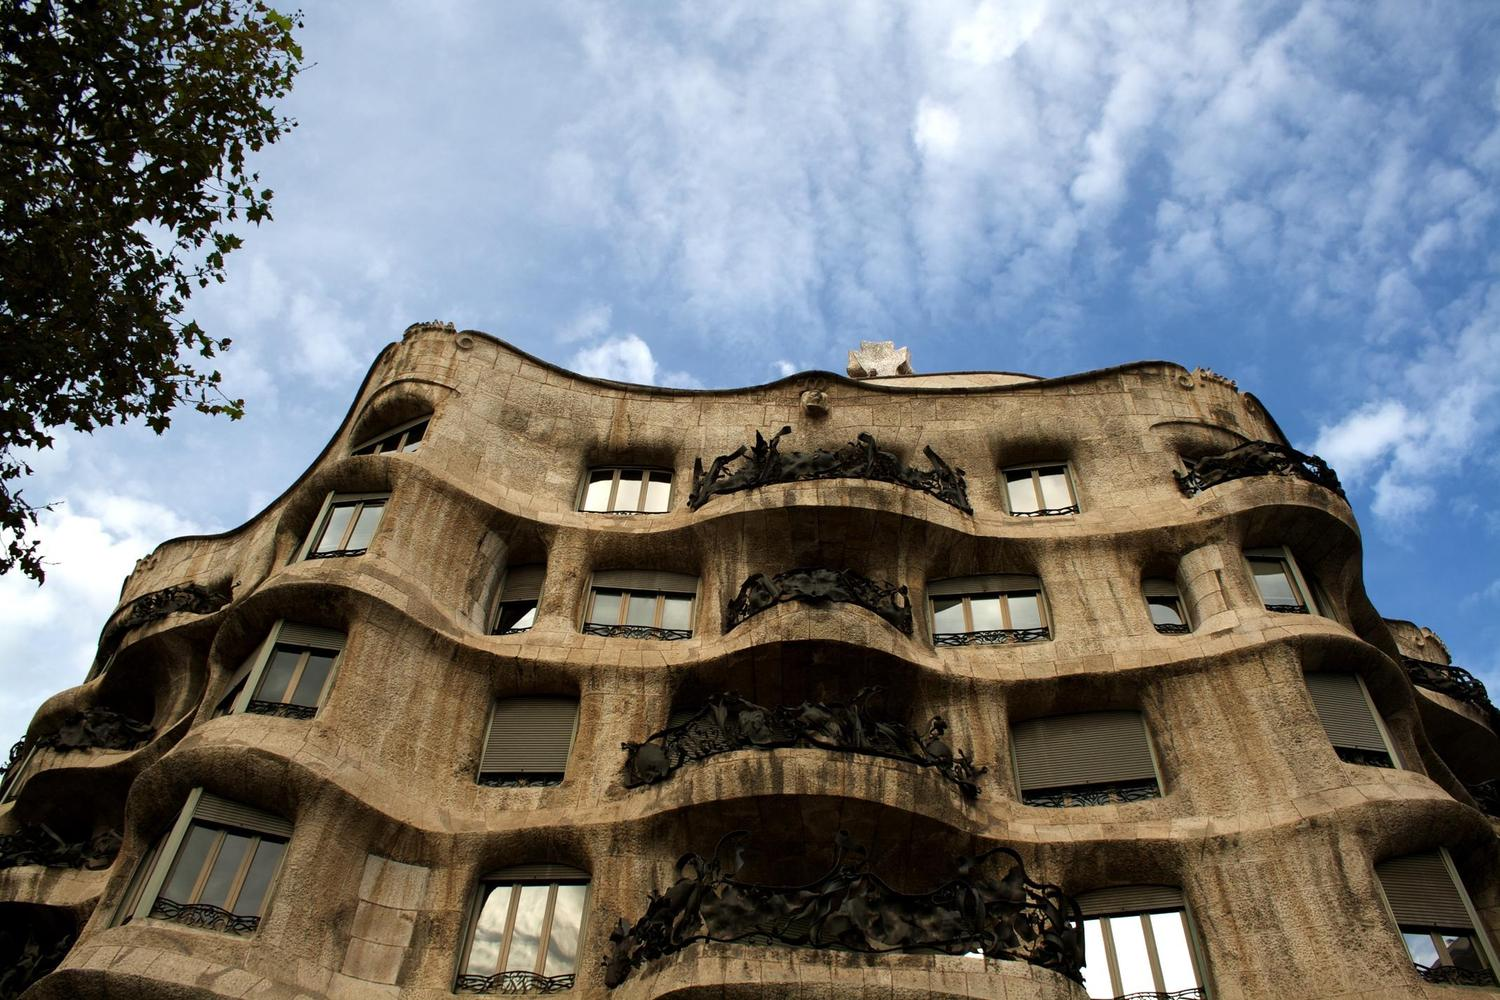 The facade of Gaudí's Pedrera building in Barcelona